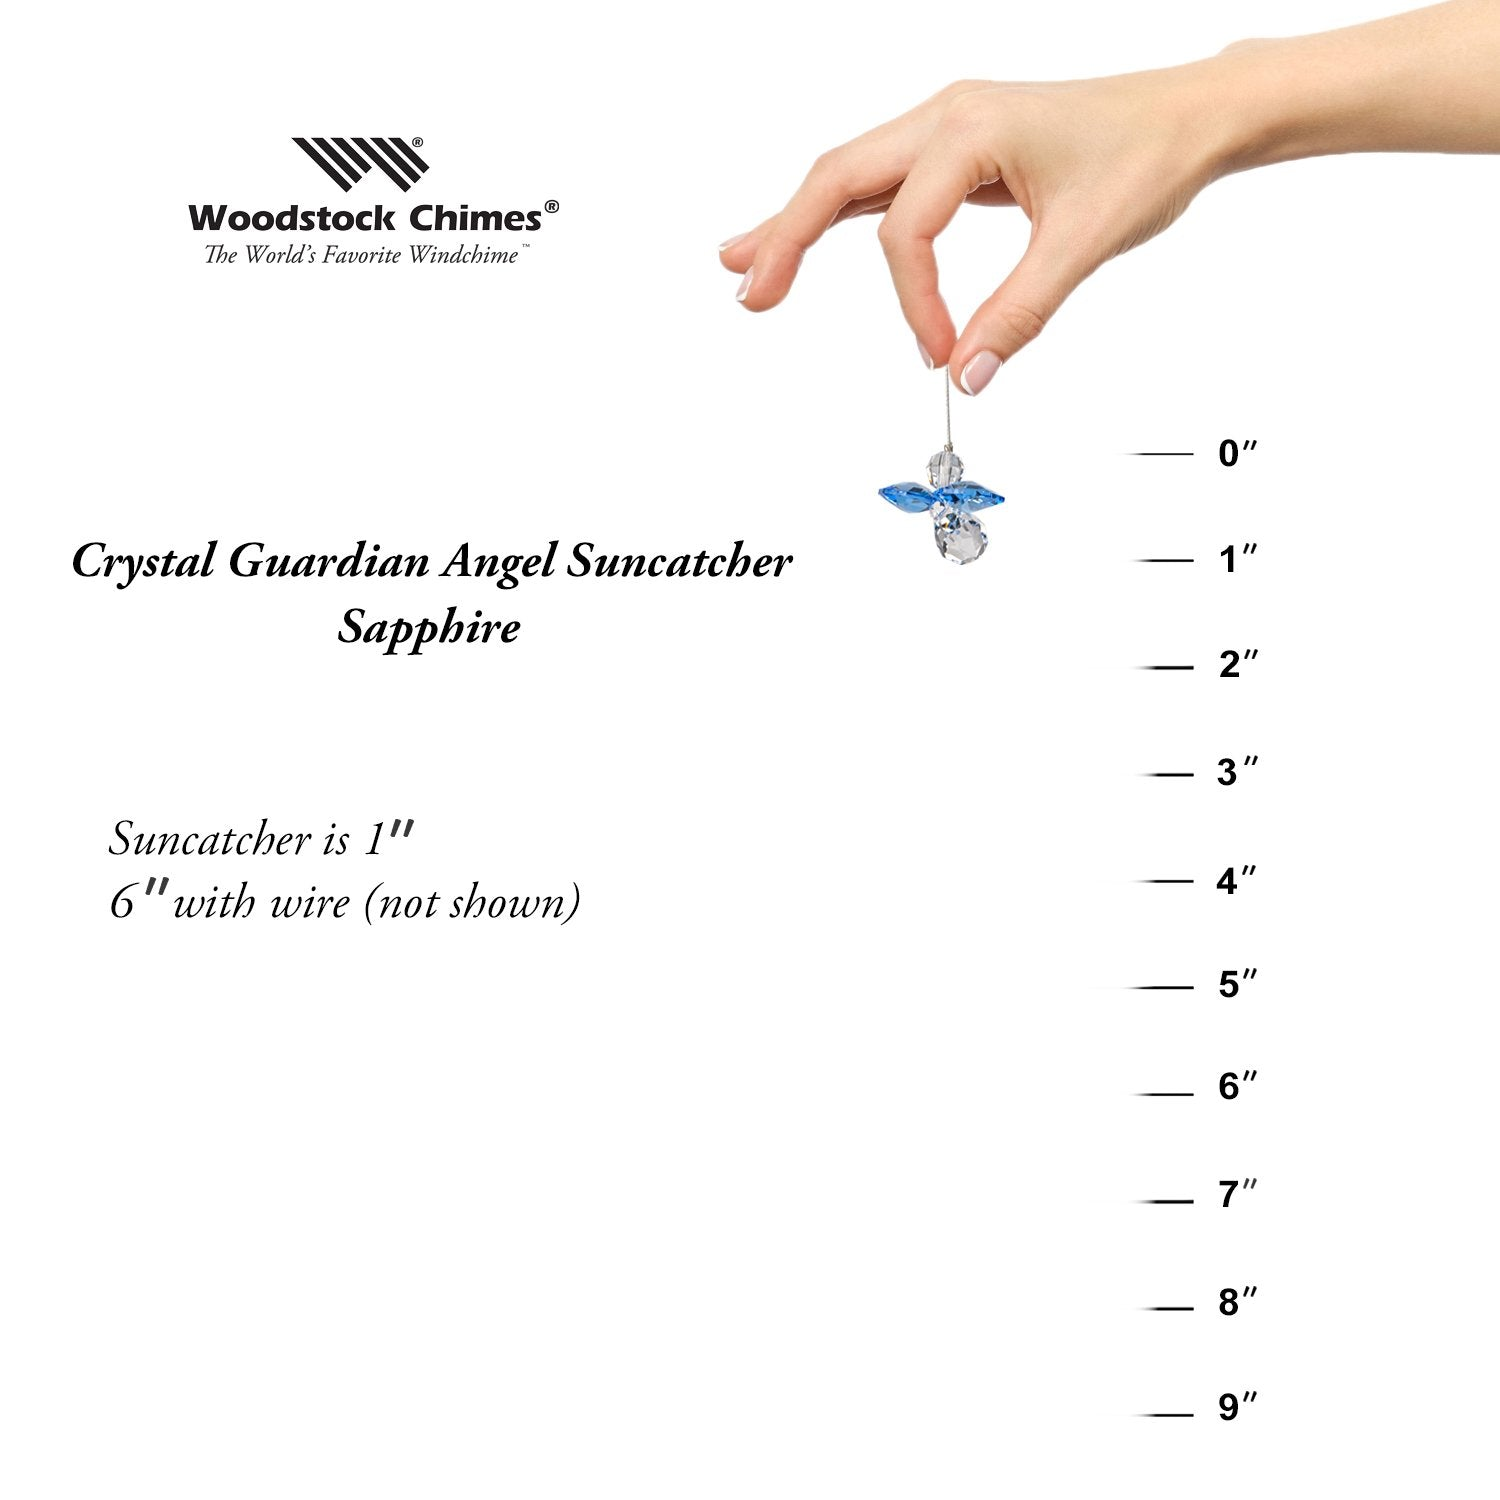 Crystal Guardian Angel Suncatcher - Sapphire (September) proportion image